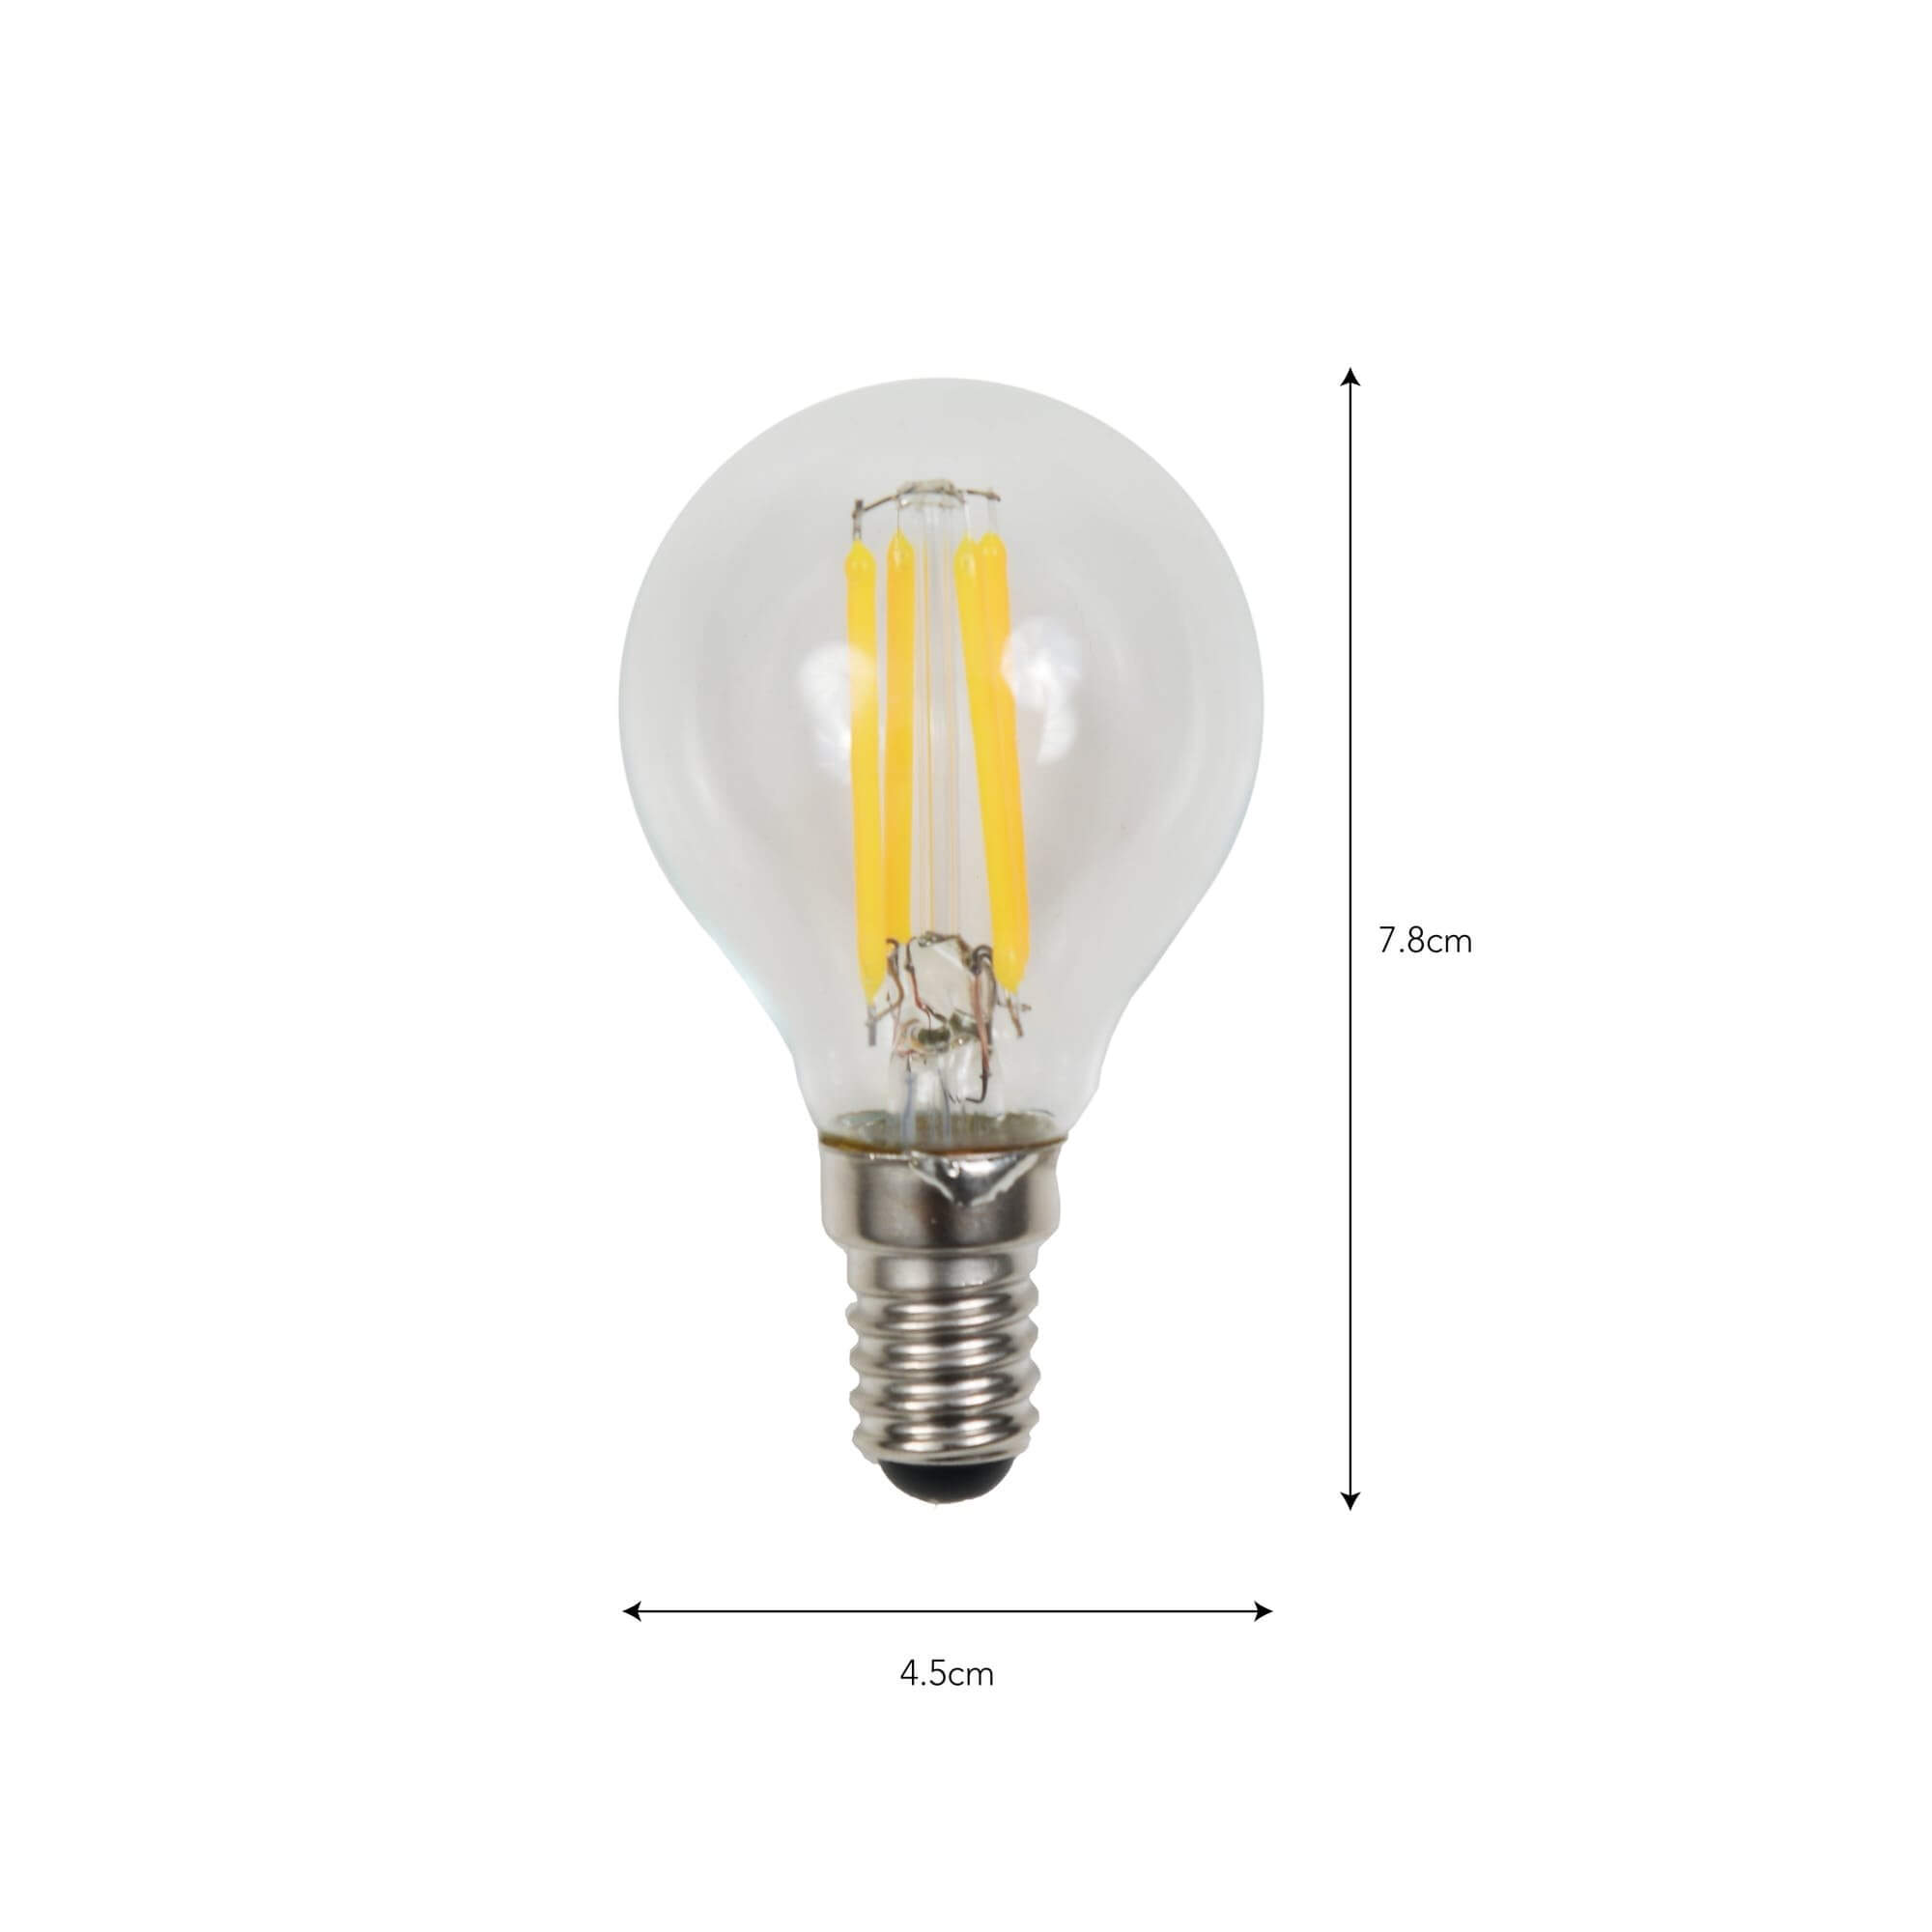 Filament Light Bulb - Golf ball